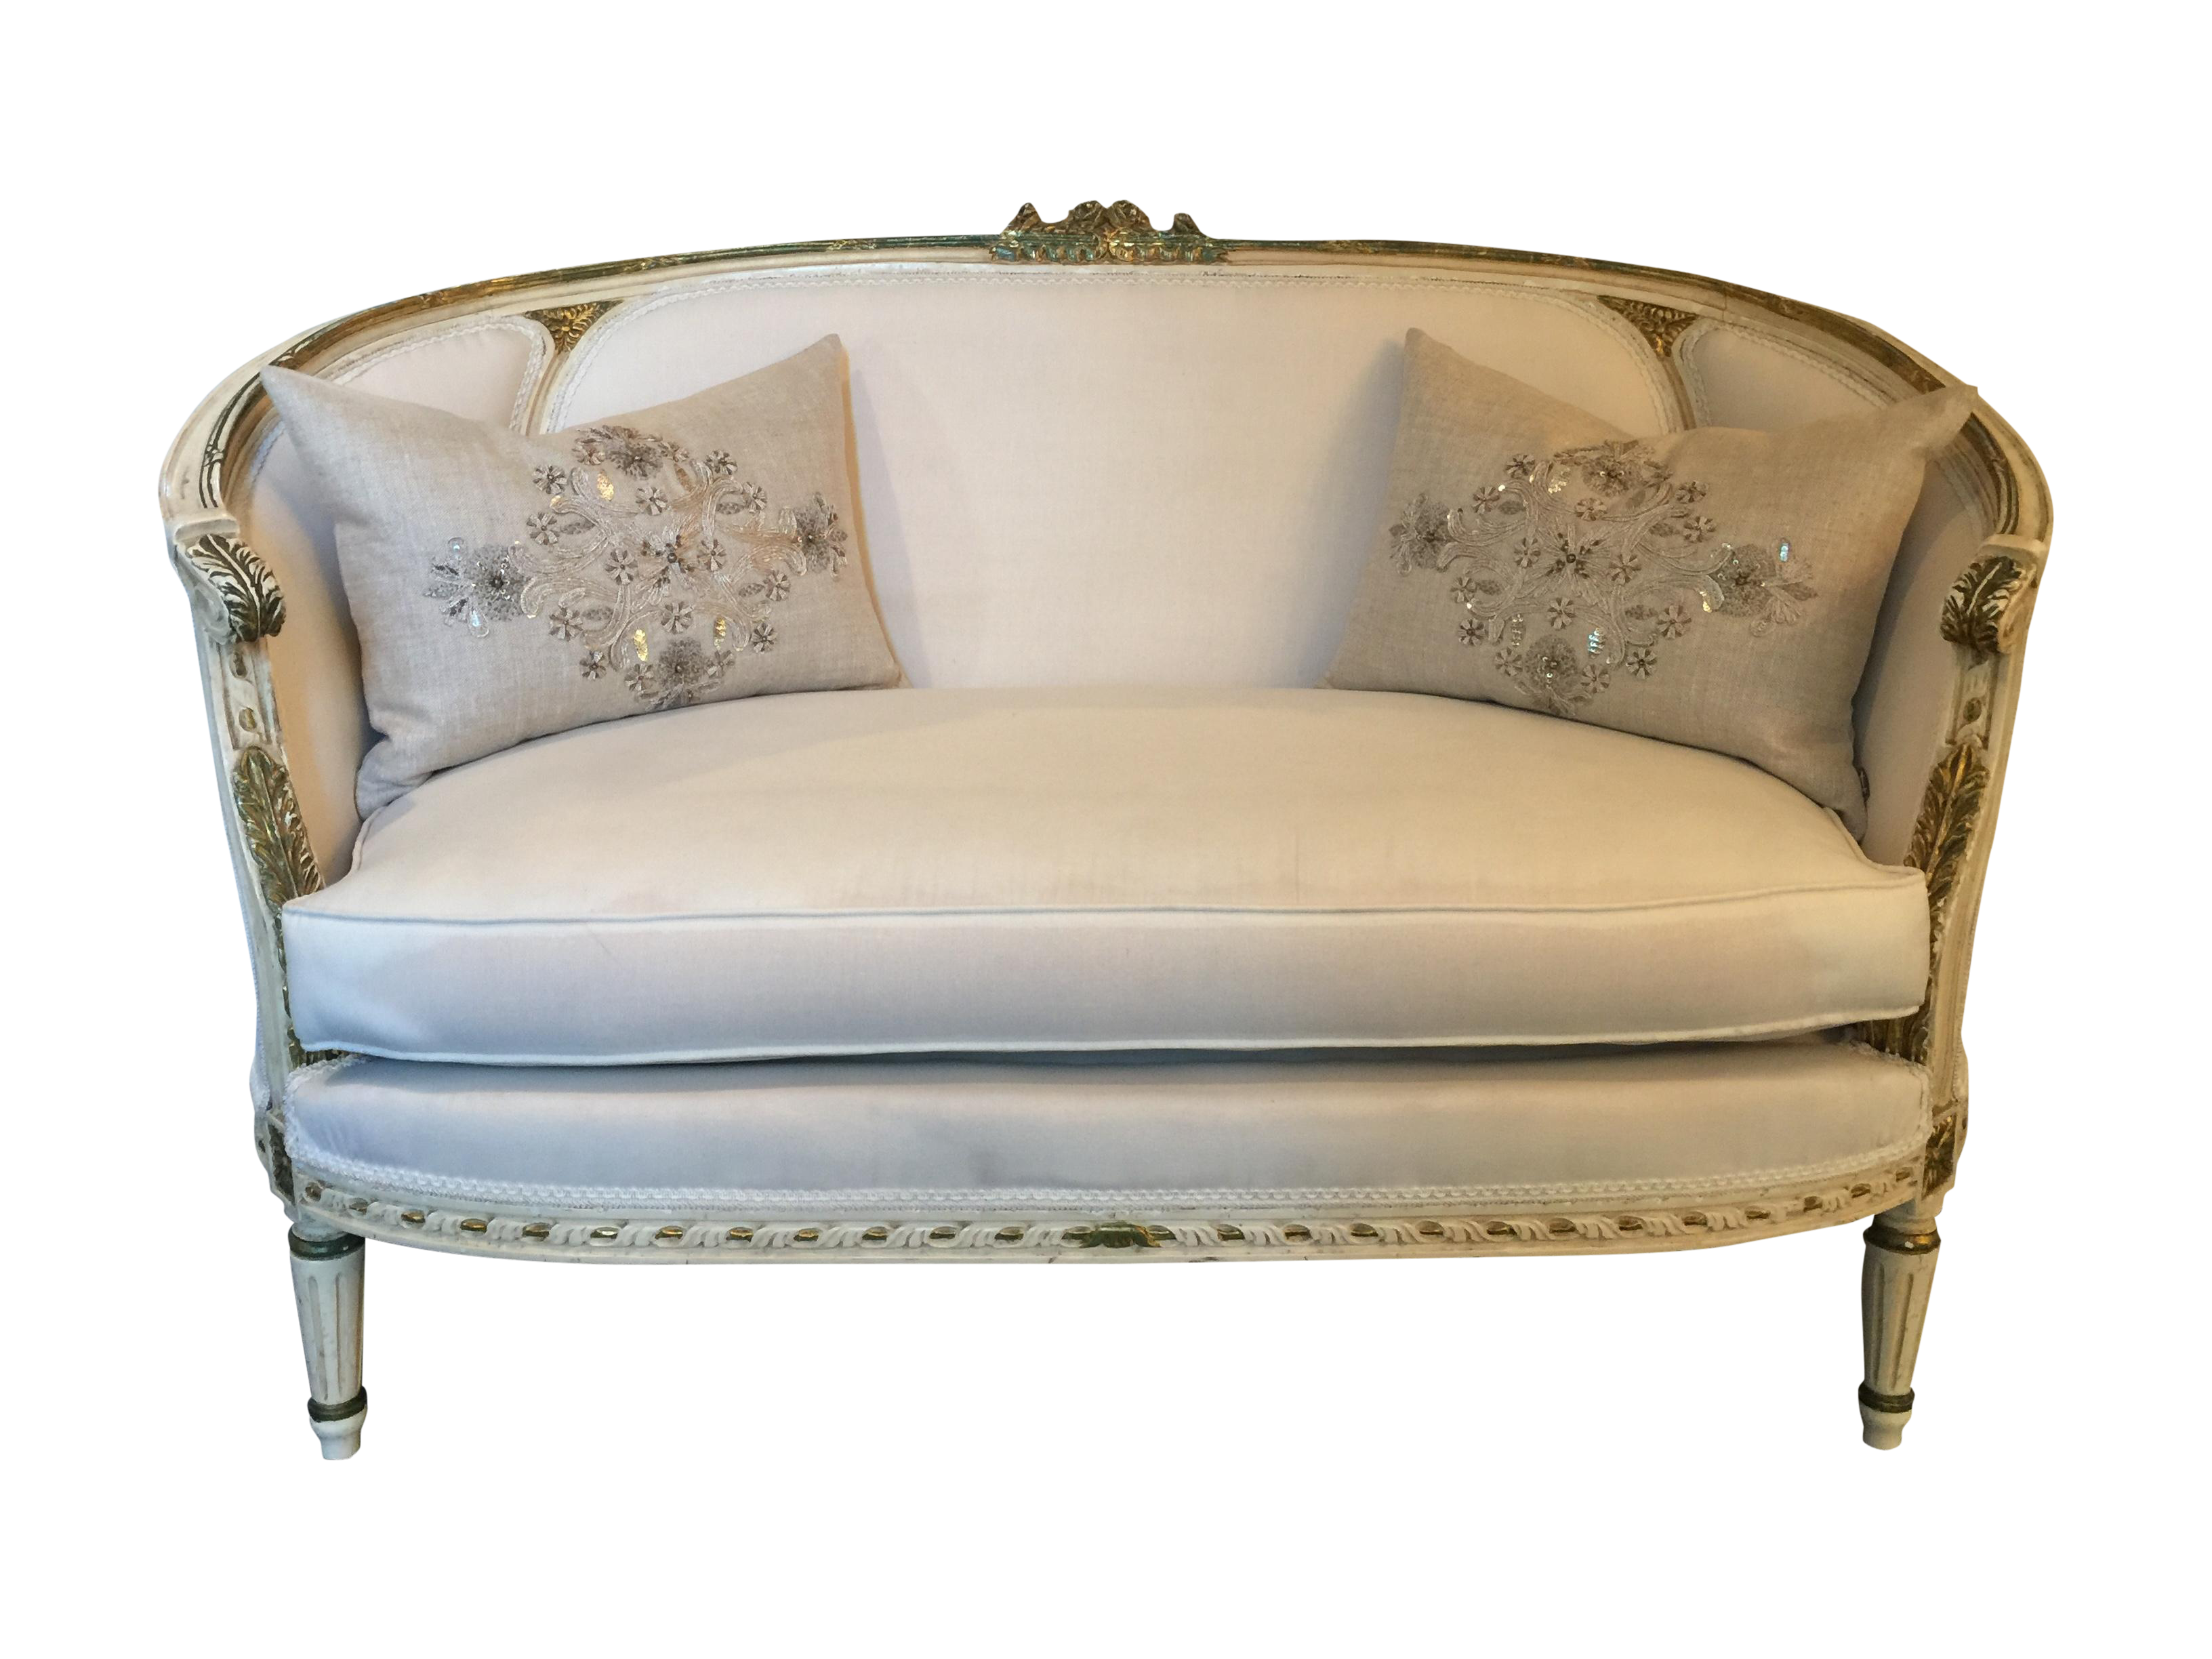 Antique French Louis Xvi Settee Loveseat Sofa Chairish